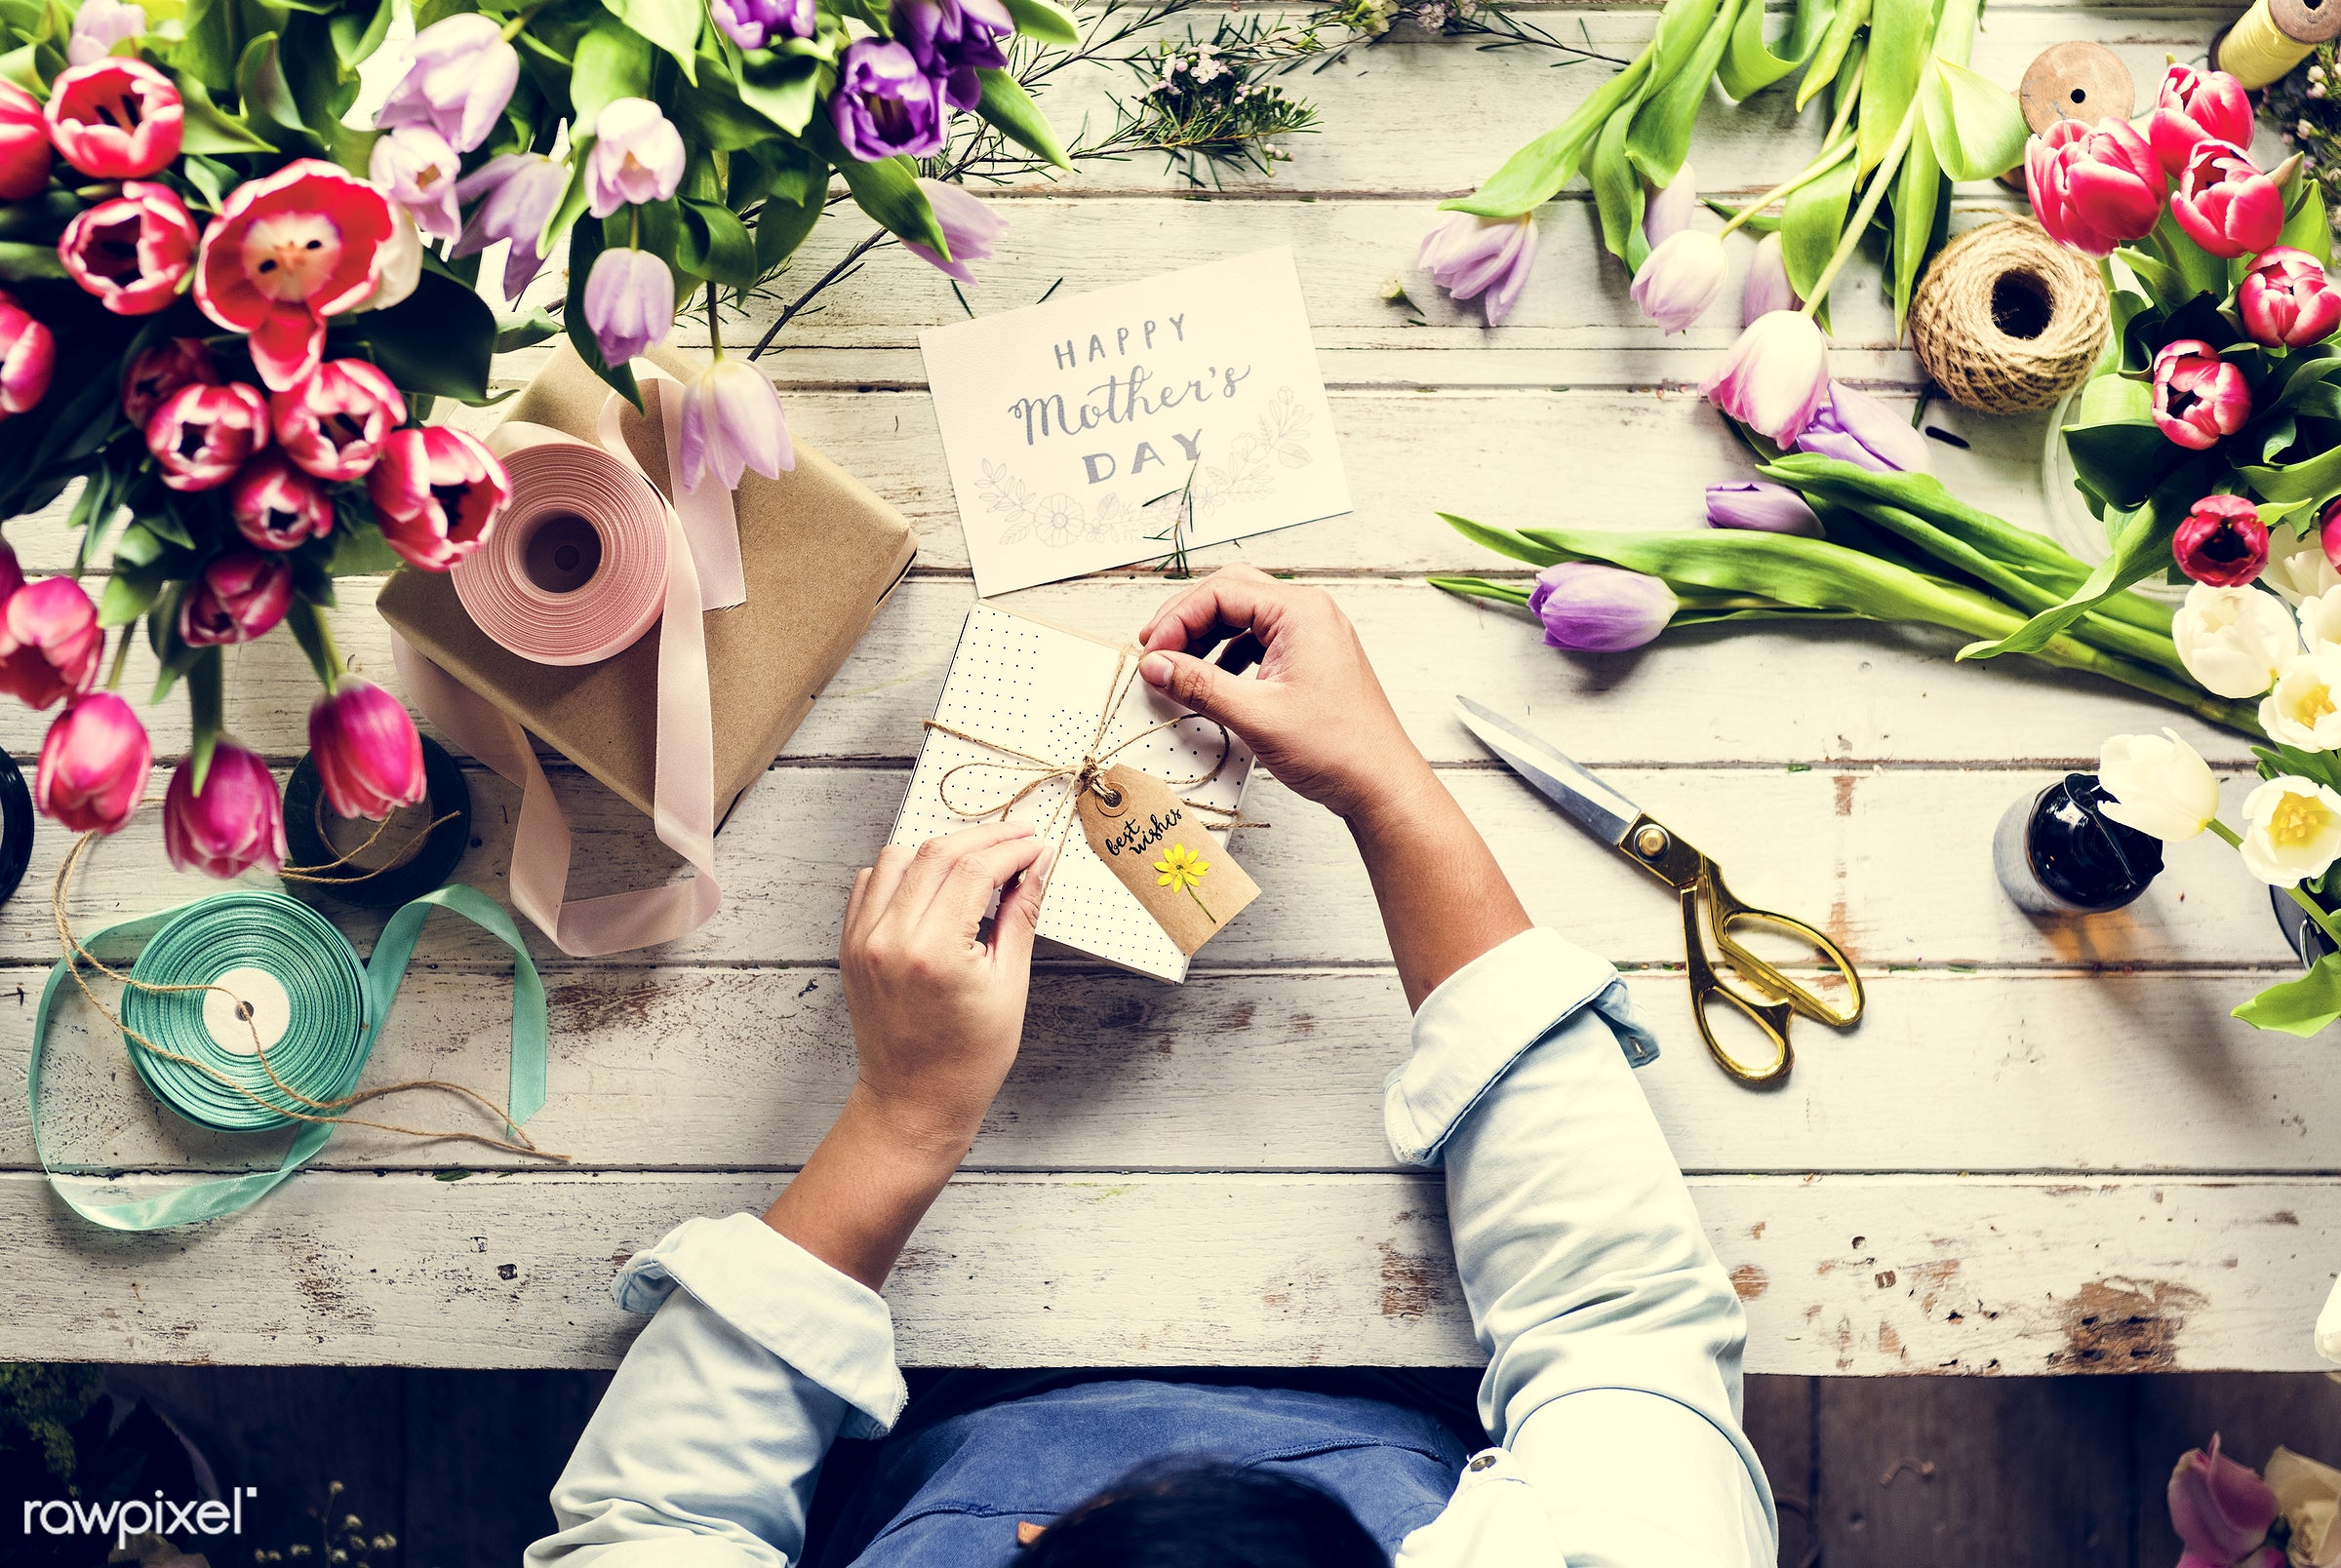 shop, bouquet, person, detail, people, decor, nature, card, flowers, work, greeting, refreshment, hold, career, florist,...